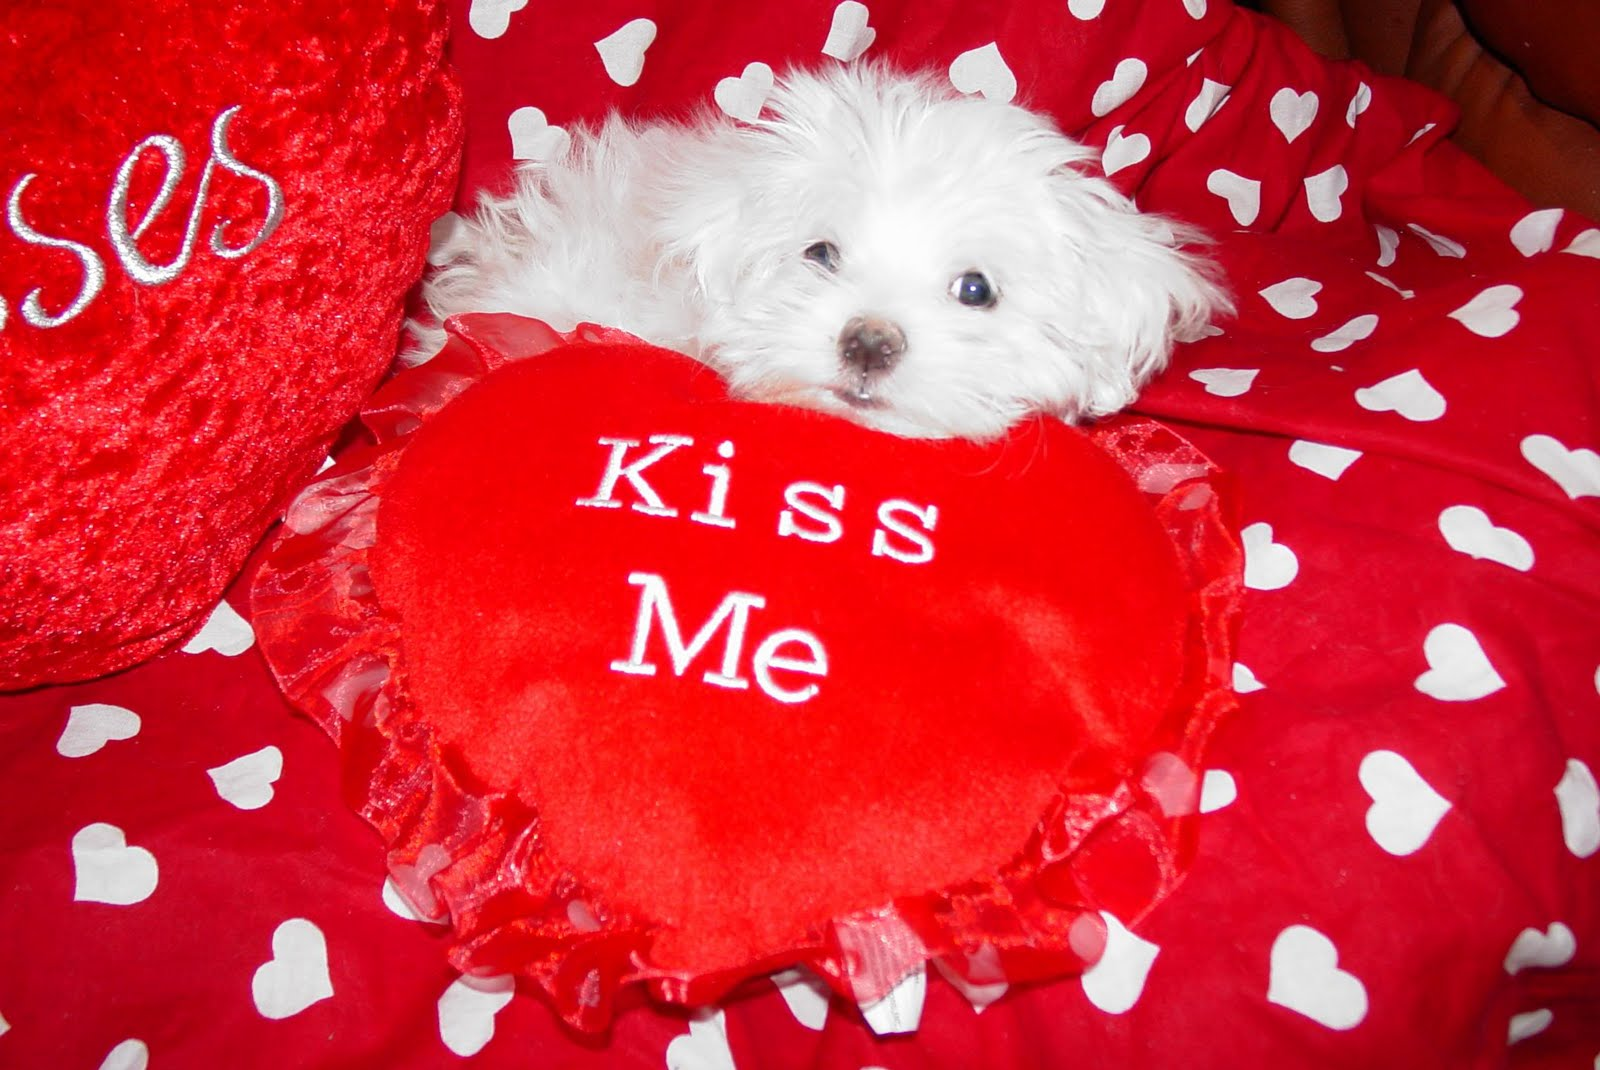 Valentines Kittens Puppies and Cupcakes   Cute Pictures and GIFs 1600x1070